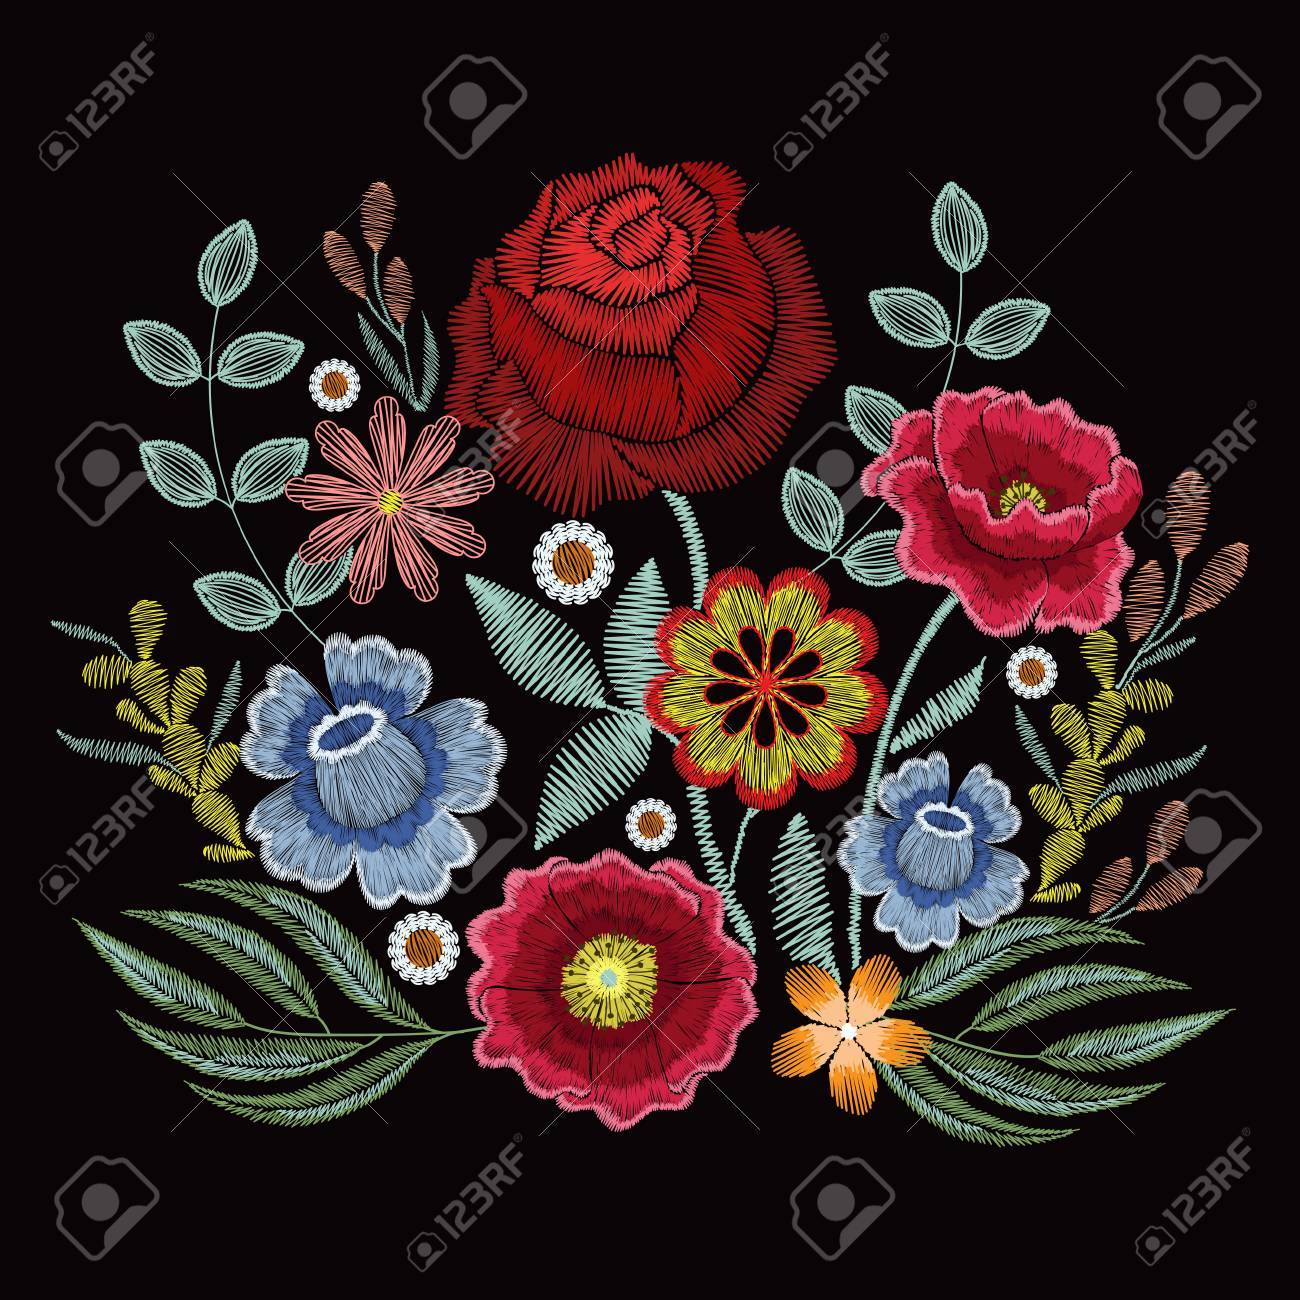 Embroidery spring wild flowers for fashion clothes, apparel decoration - 89245156